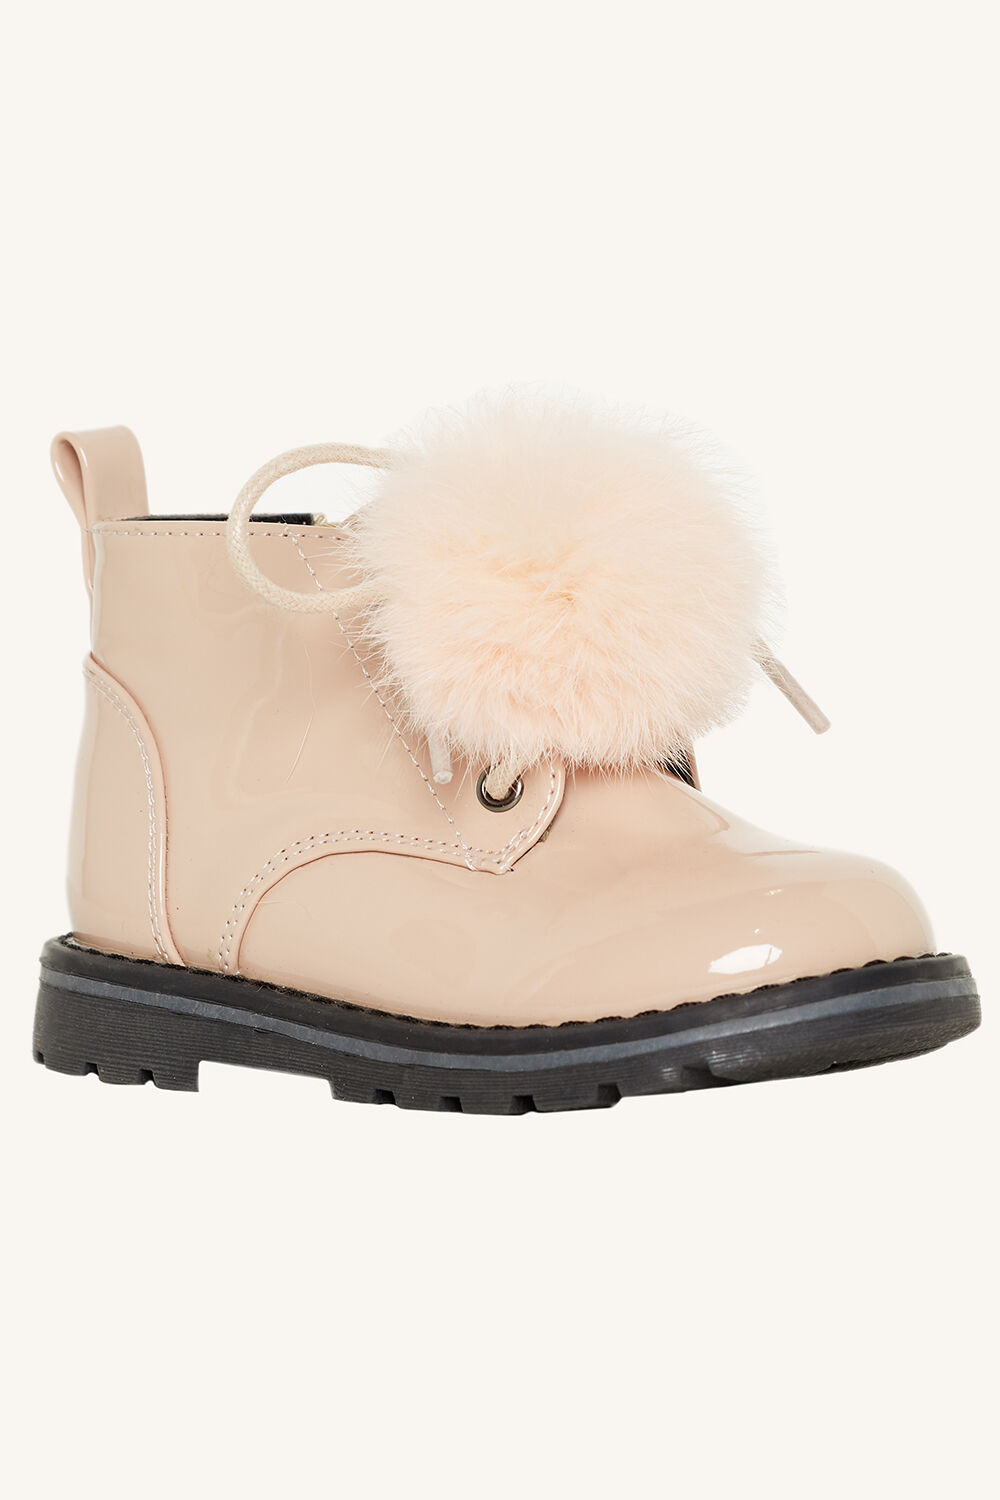 POM PATENT BOOT in colour PINK CARNATION